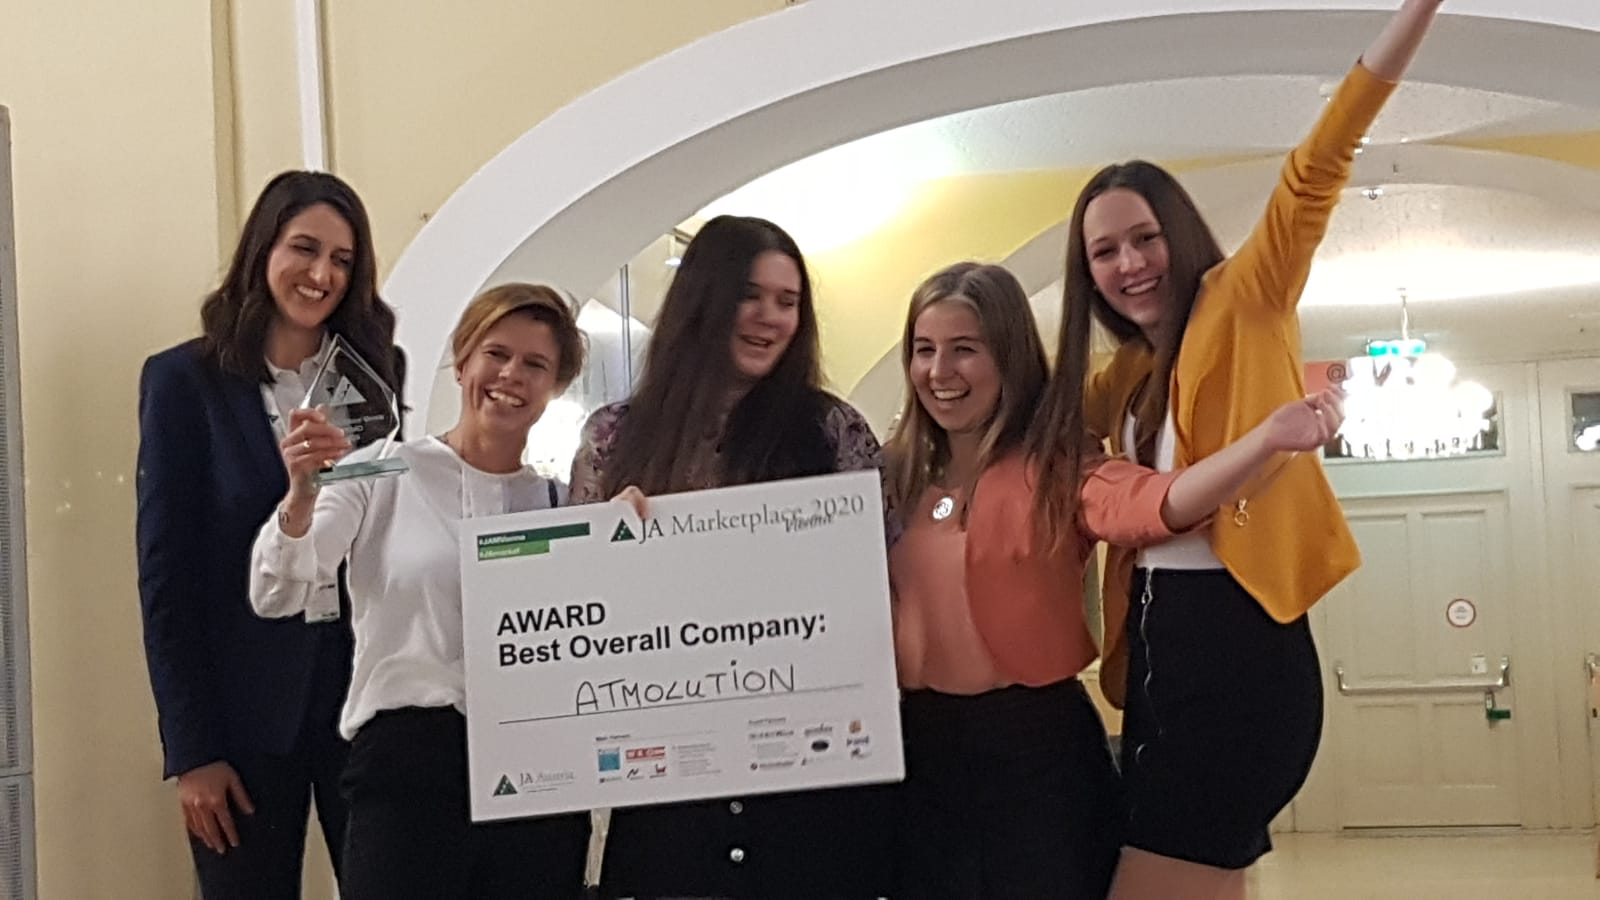 Best Overall Company JA Marketplace 2020 Atmolution